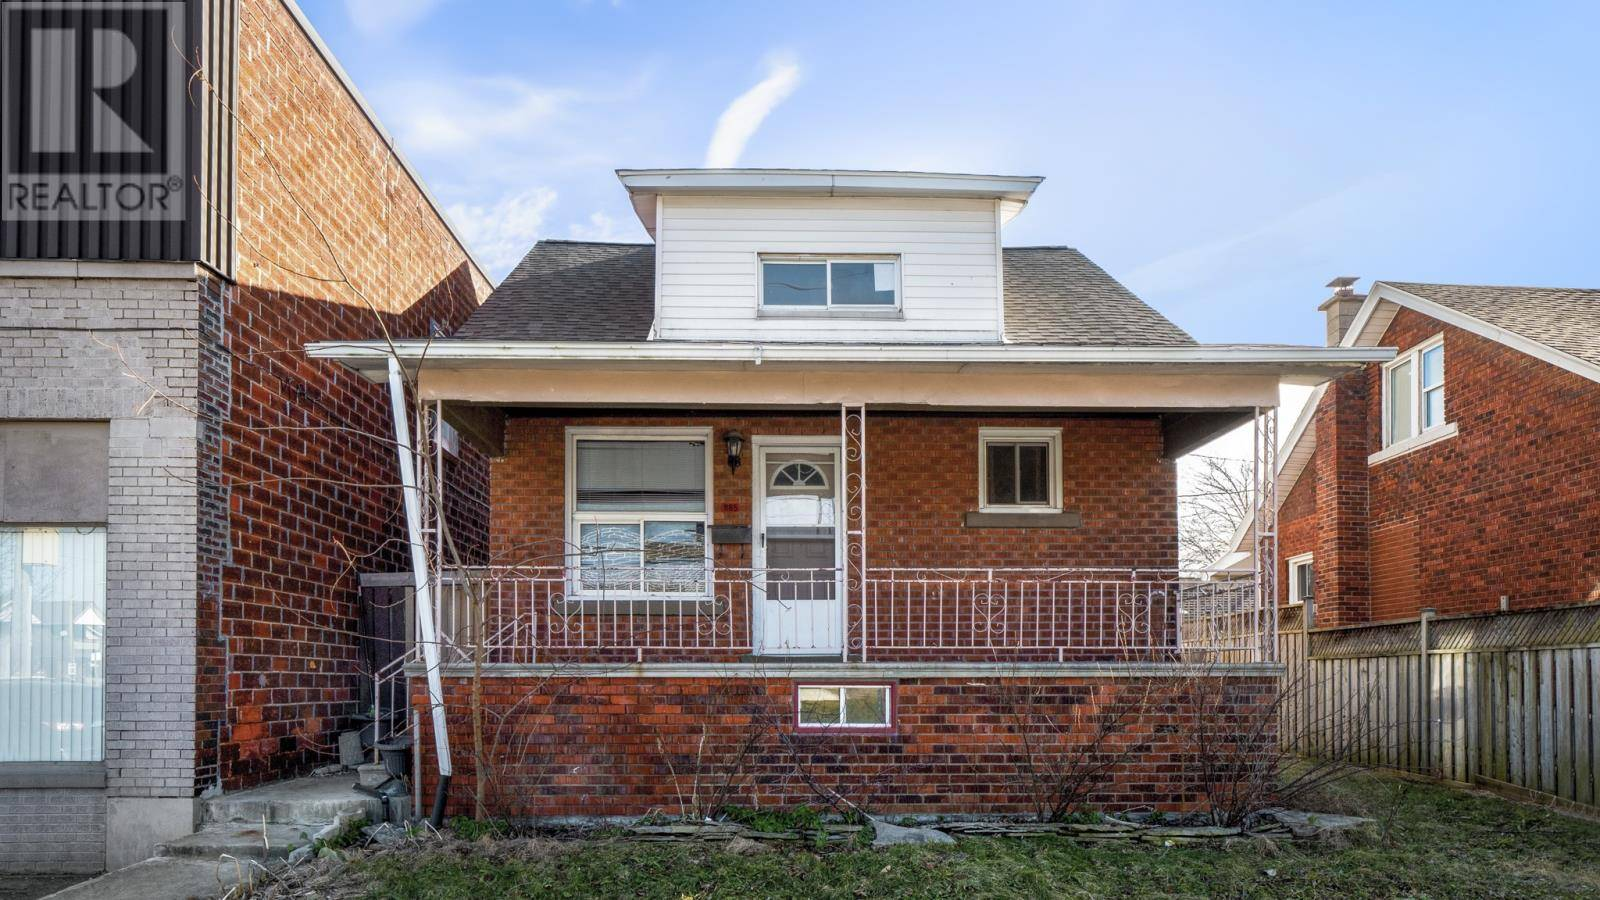 House for sale at 885 Shepherd St East Windsor Ontario - MLS: 20001525